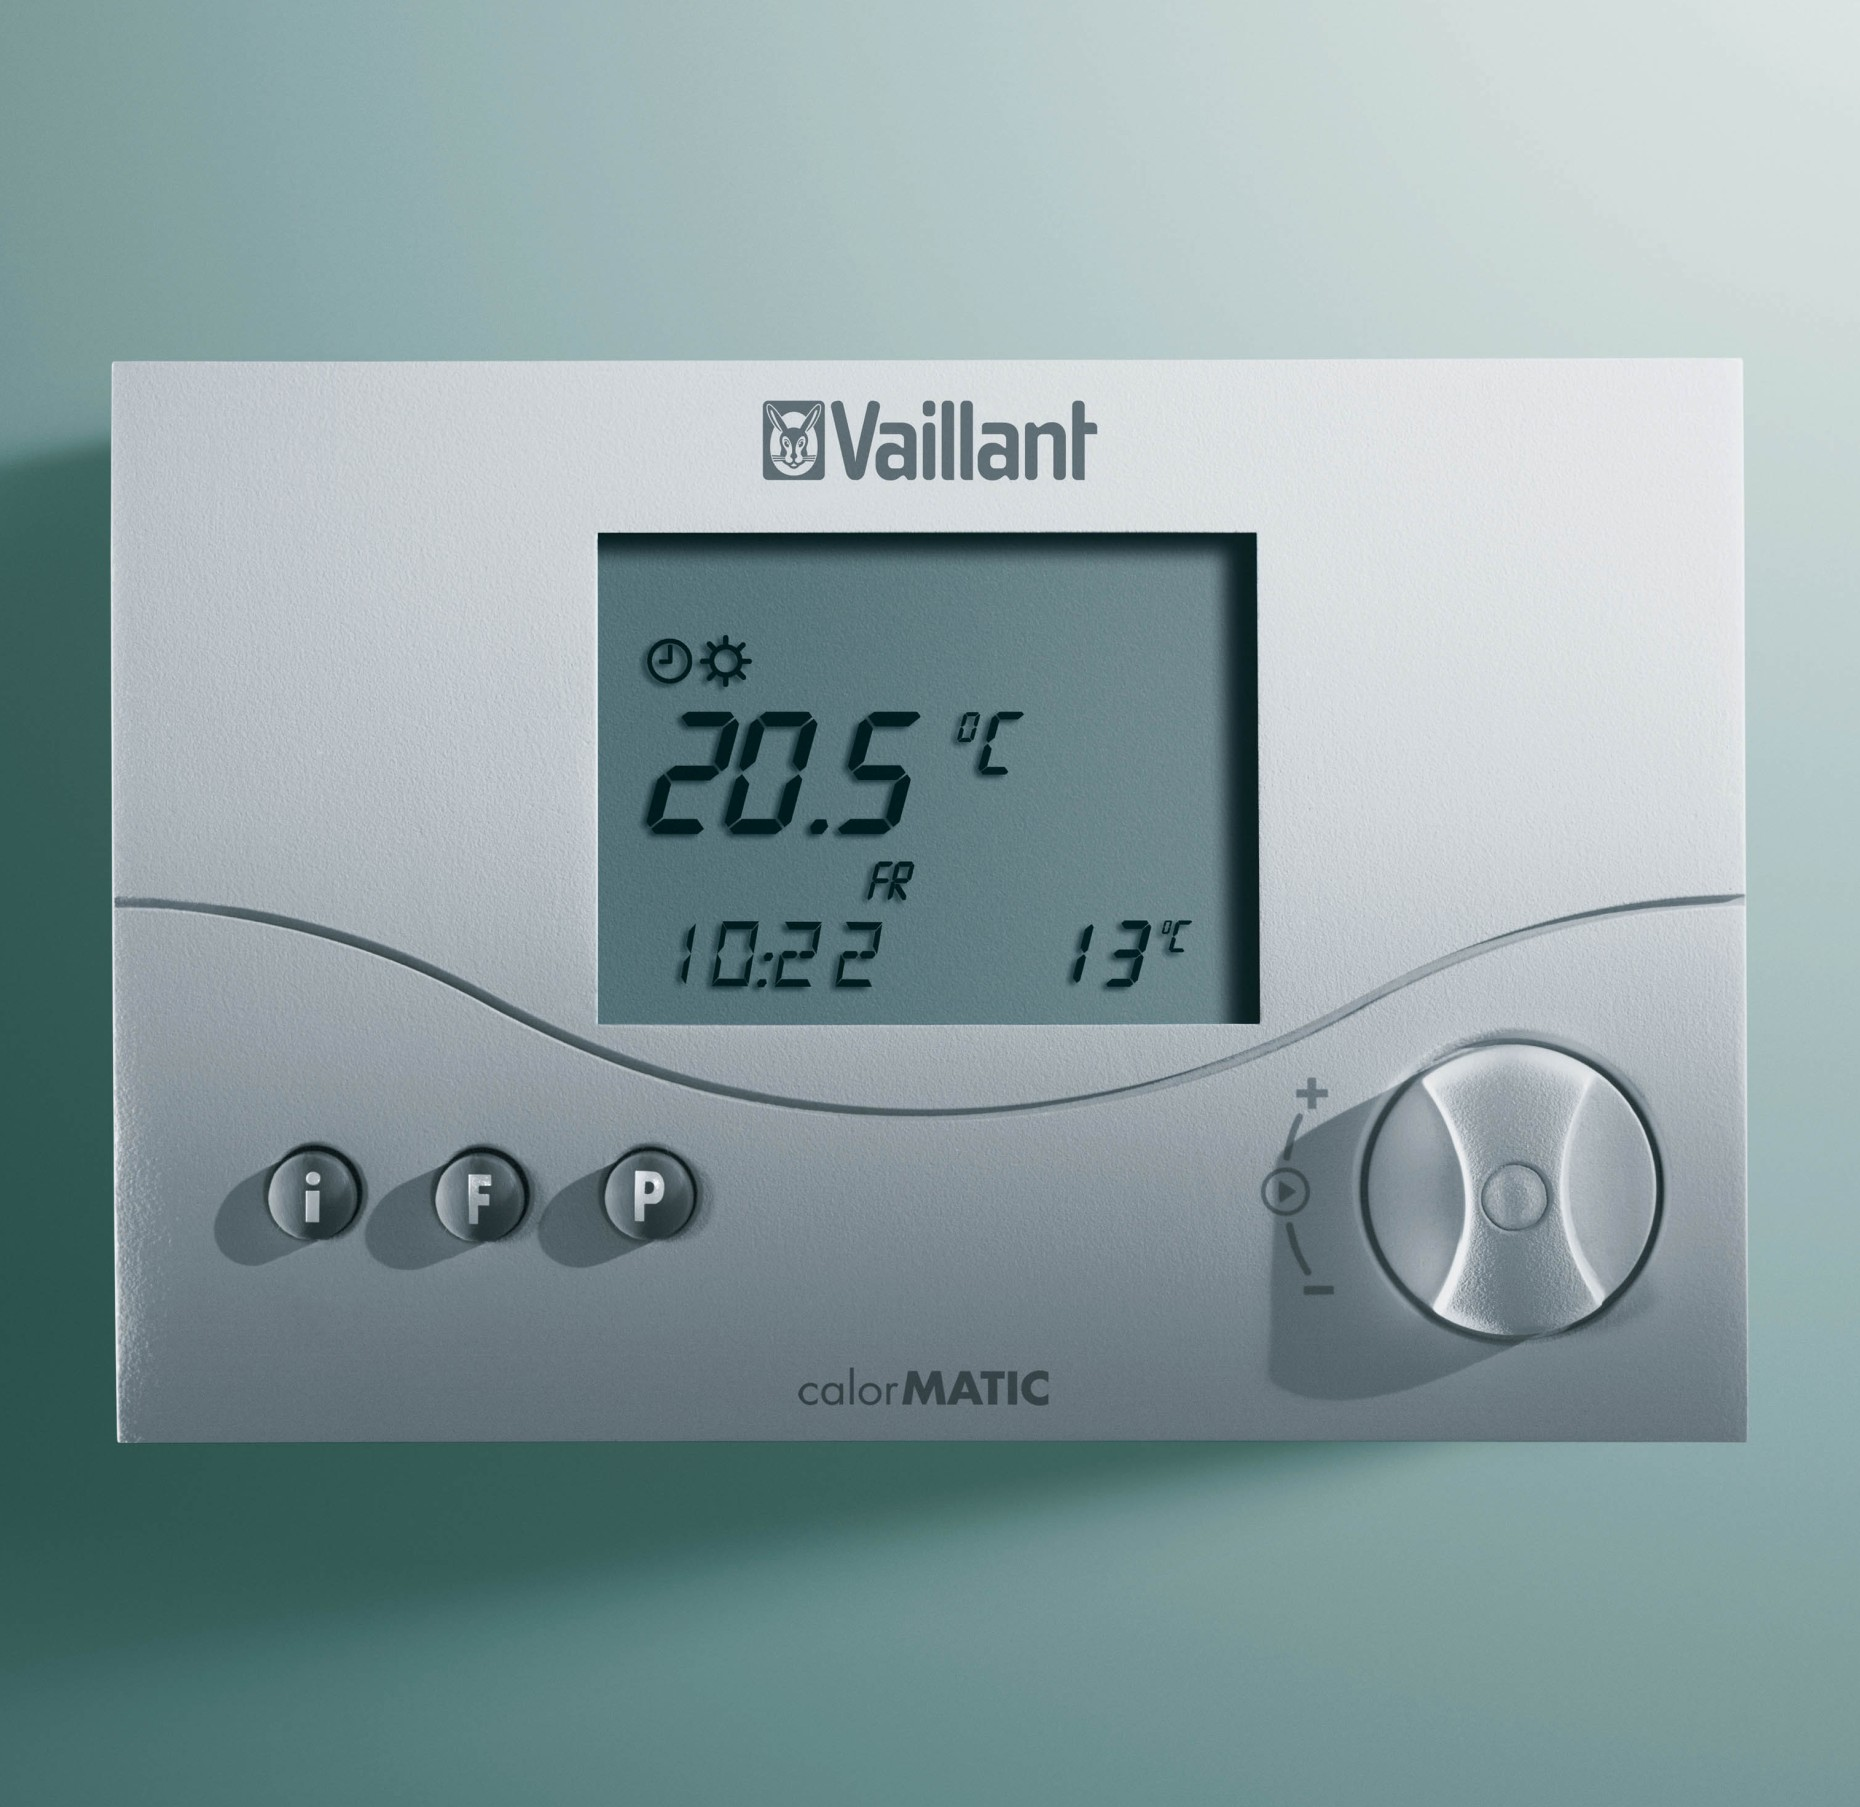 thermostat modulant sans fils calormatic vrt 340f vaillant. Black Bedroom Furniture Sets. Home Design Ideas